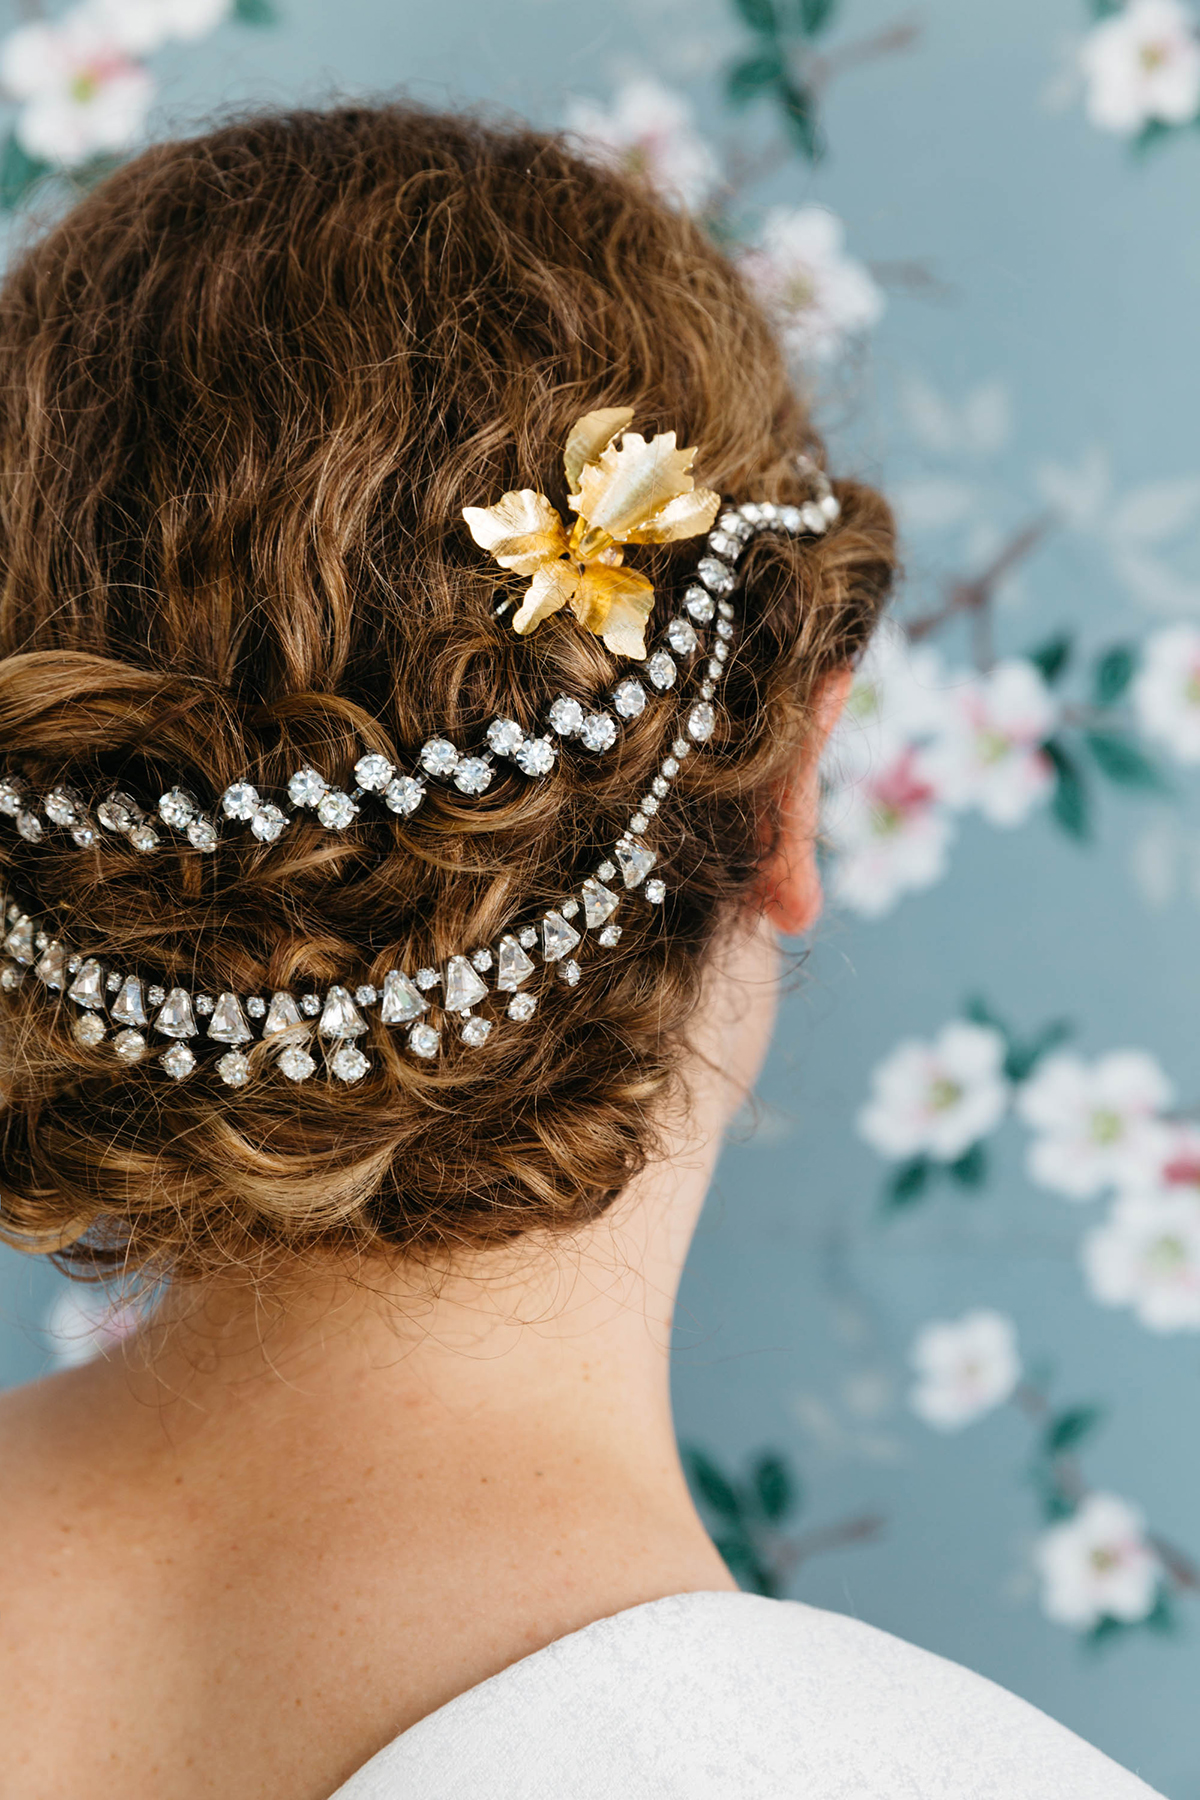 DIY Hair Accessories With Vintage Jewelry Honestly WTF